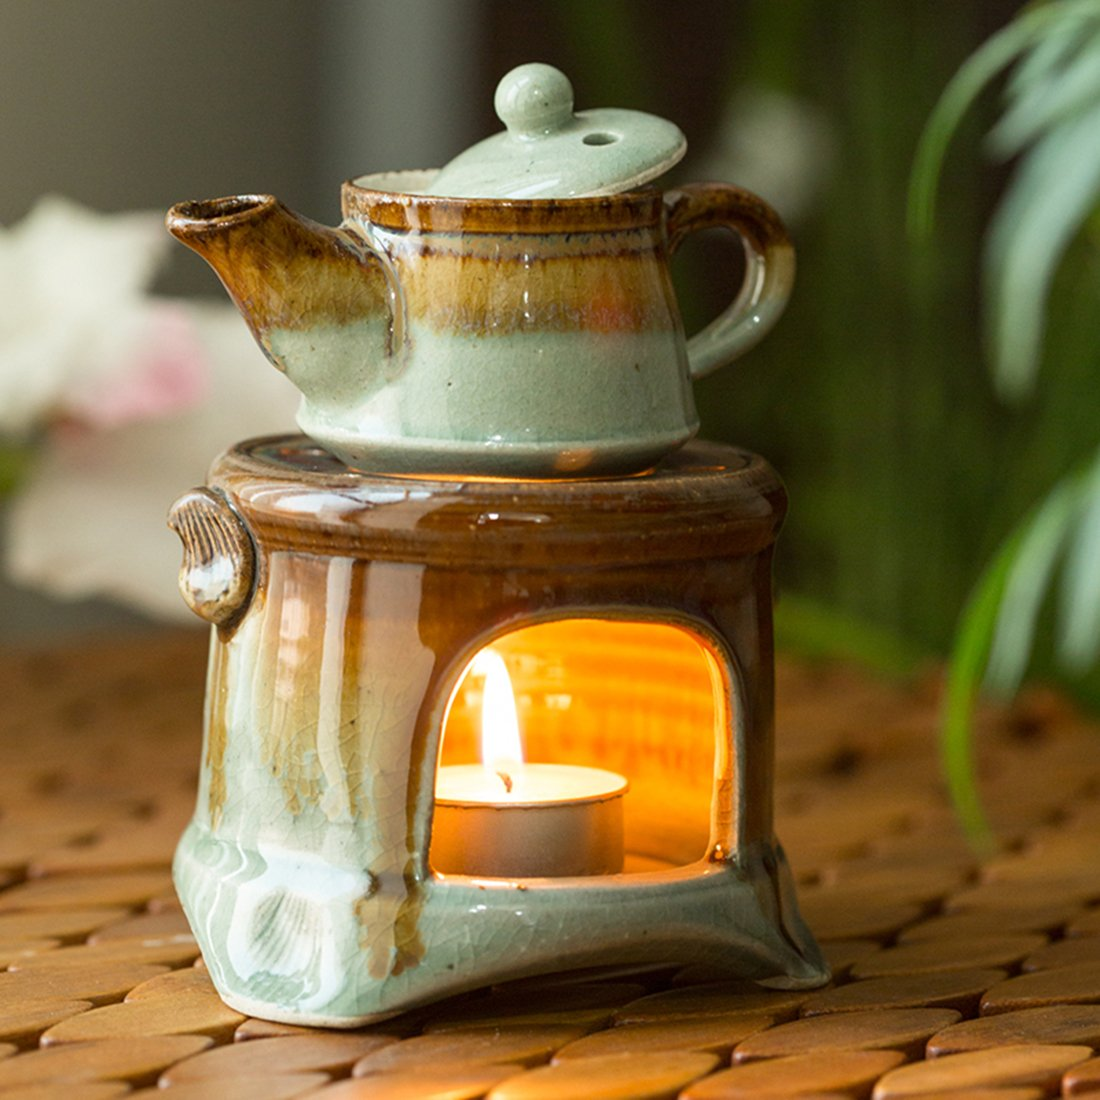 ExclusiveLane Ceramic Gas Stove Brewing Aroma Diffuser (Studio Pottery) -Candle Holders Votive Candle Holder Tealight Candles Tea Light Home Décor Candle Fragrance Oil by ExclusiveLane